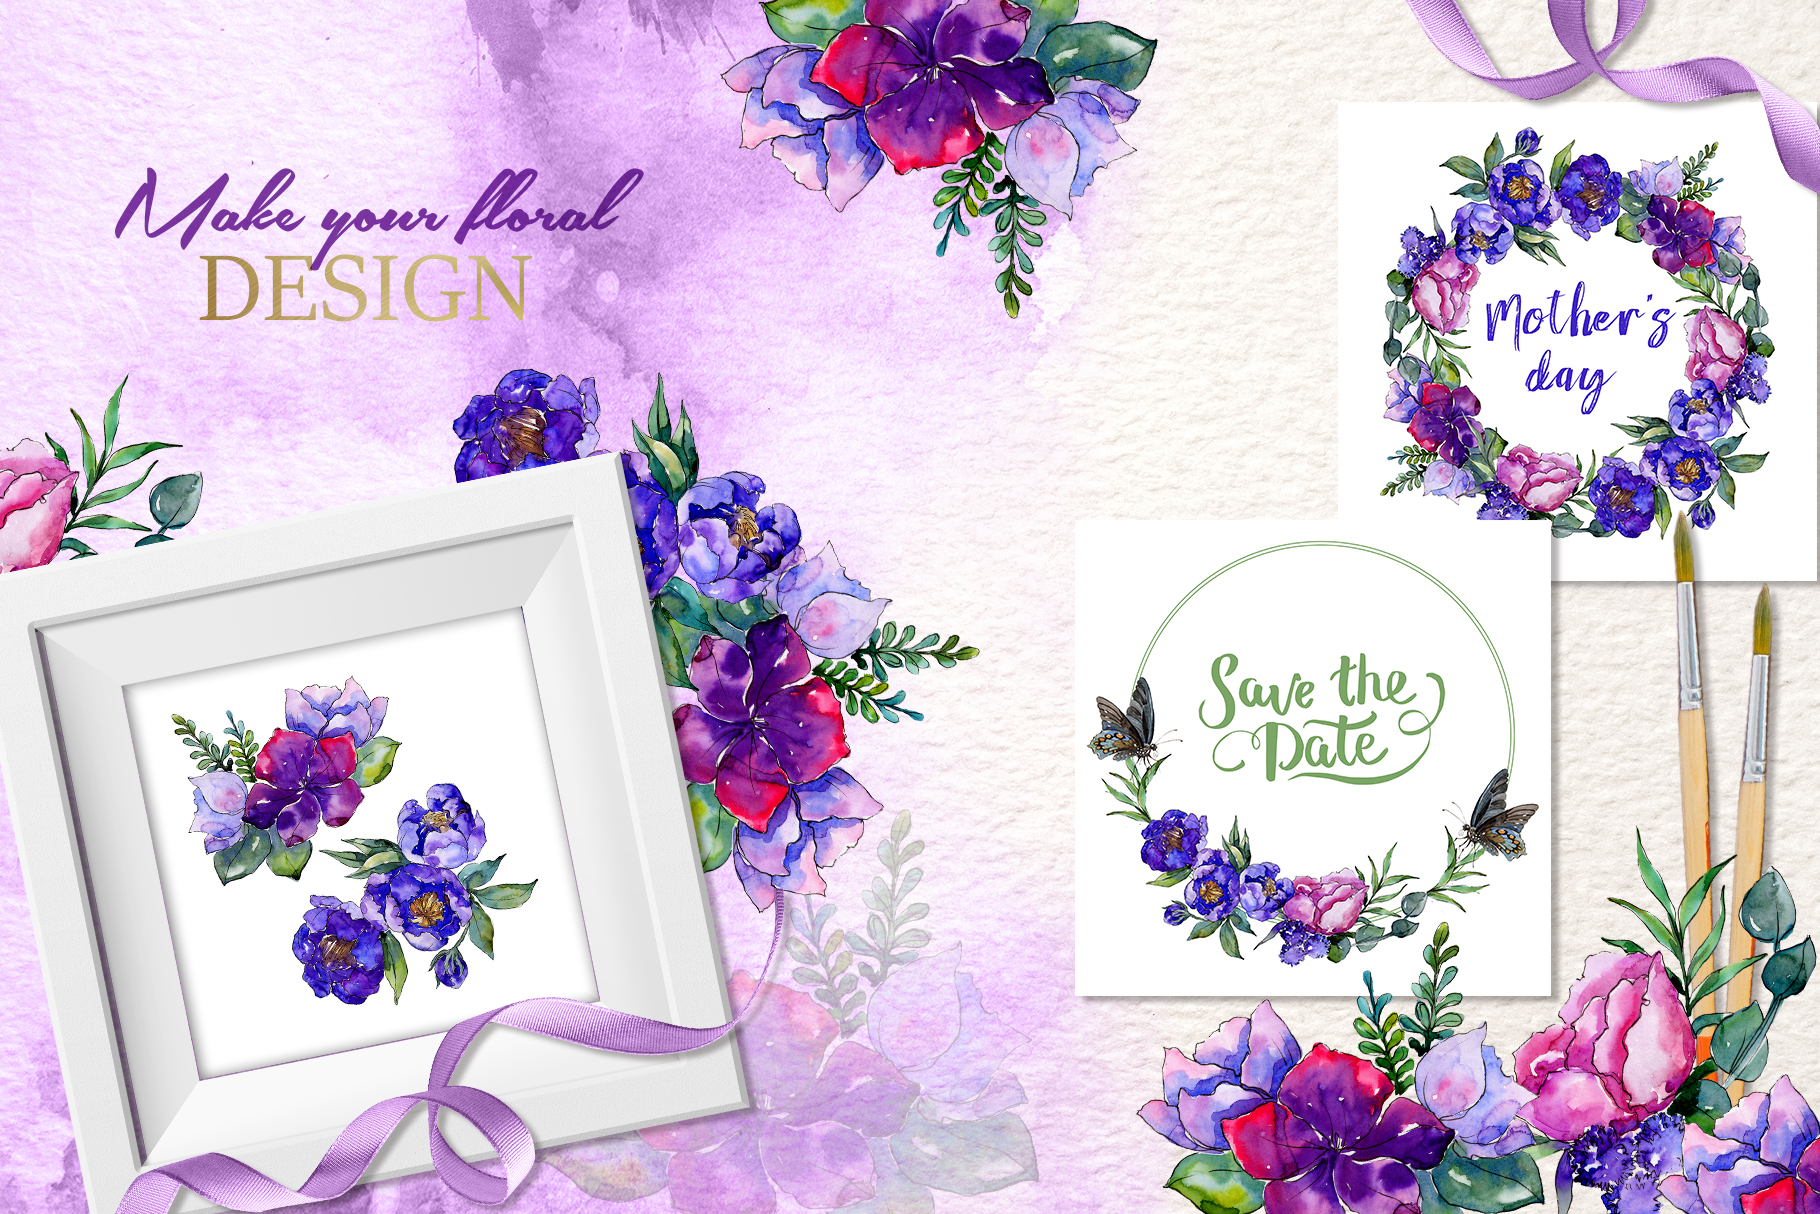 Bouquets of purple flowers Watercolor PNG example image 2